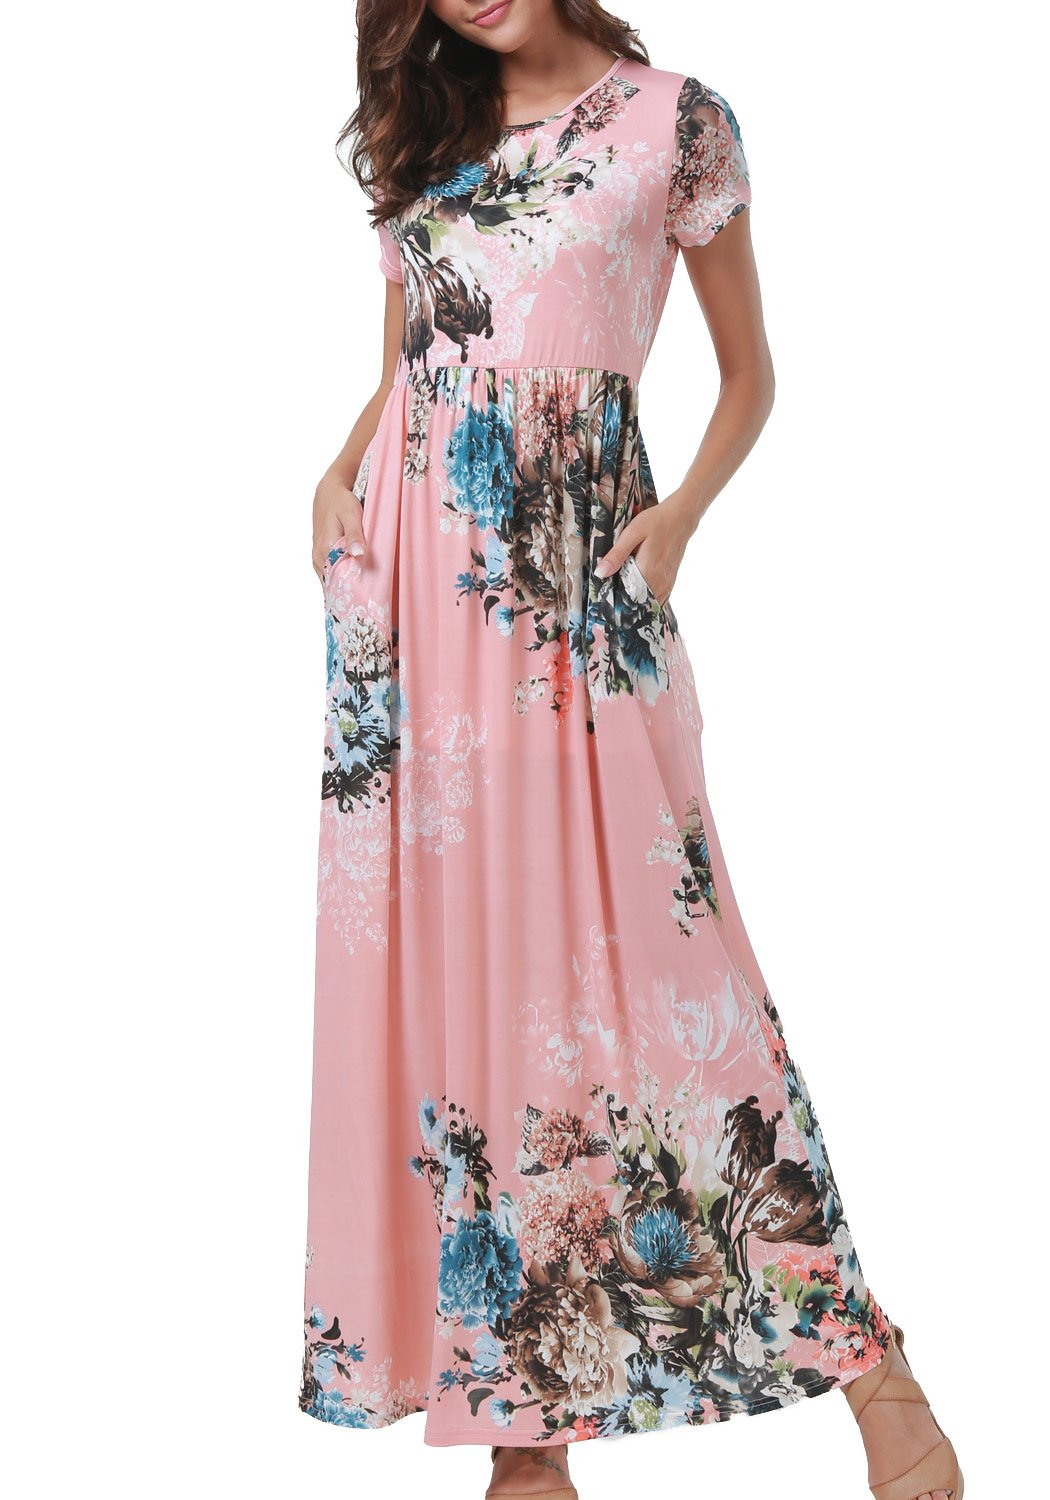 Simier Fariry Women Summer Short Sleeve Floral Print Casual Long Maxi Dress Pink M